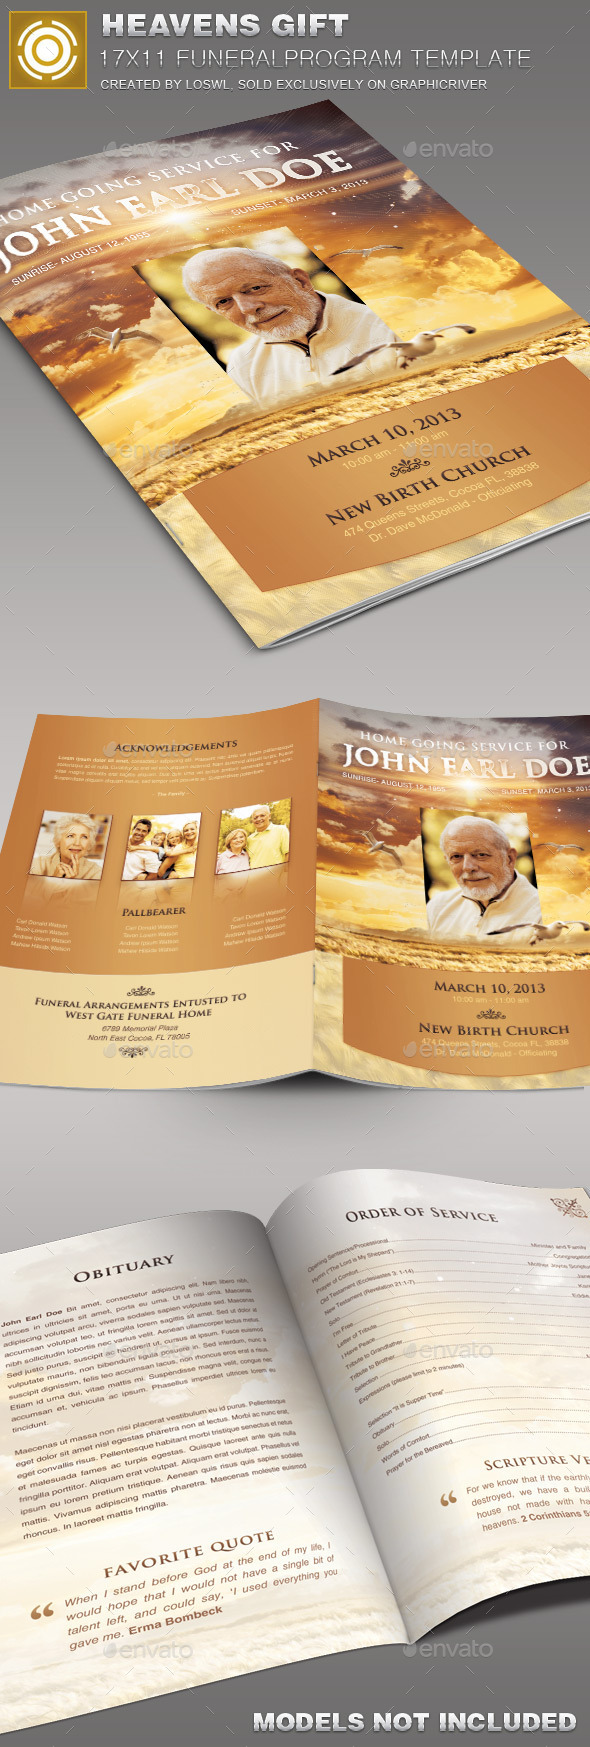 Heavens Gift Funeral Program Template 004 - Informational Brochures